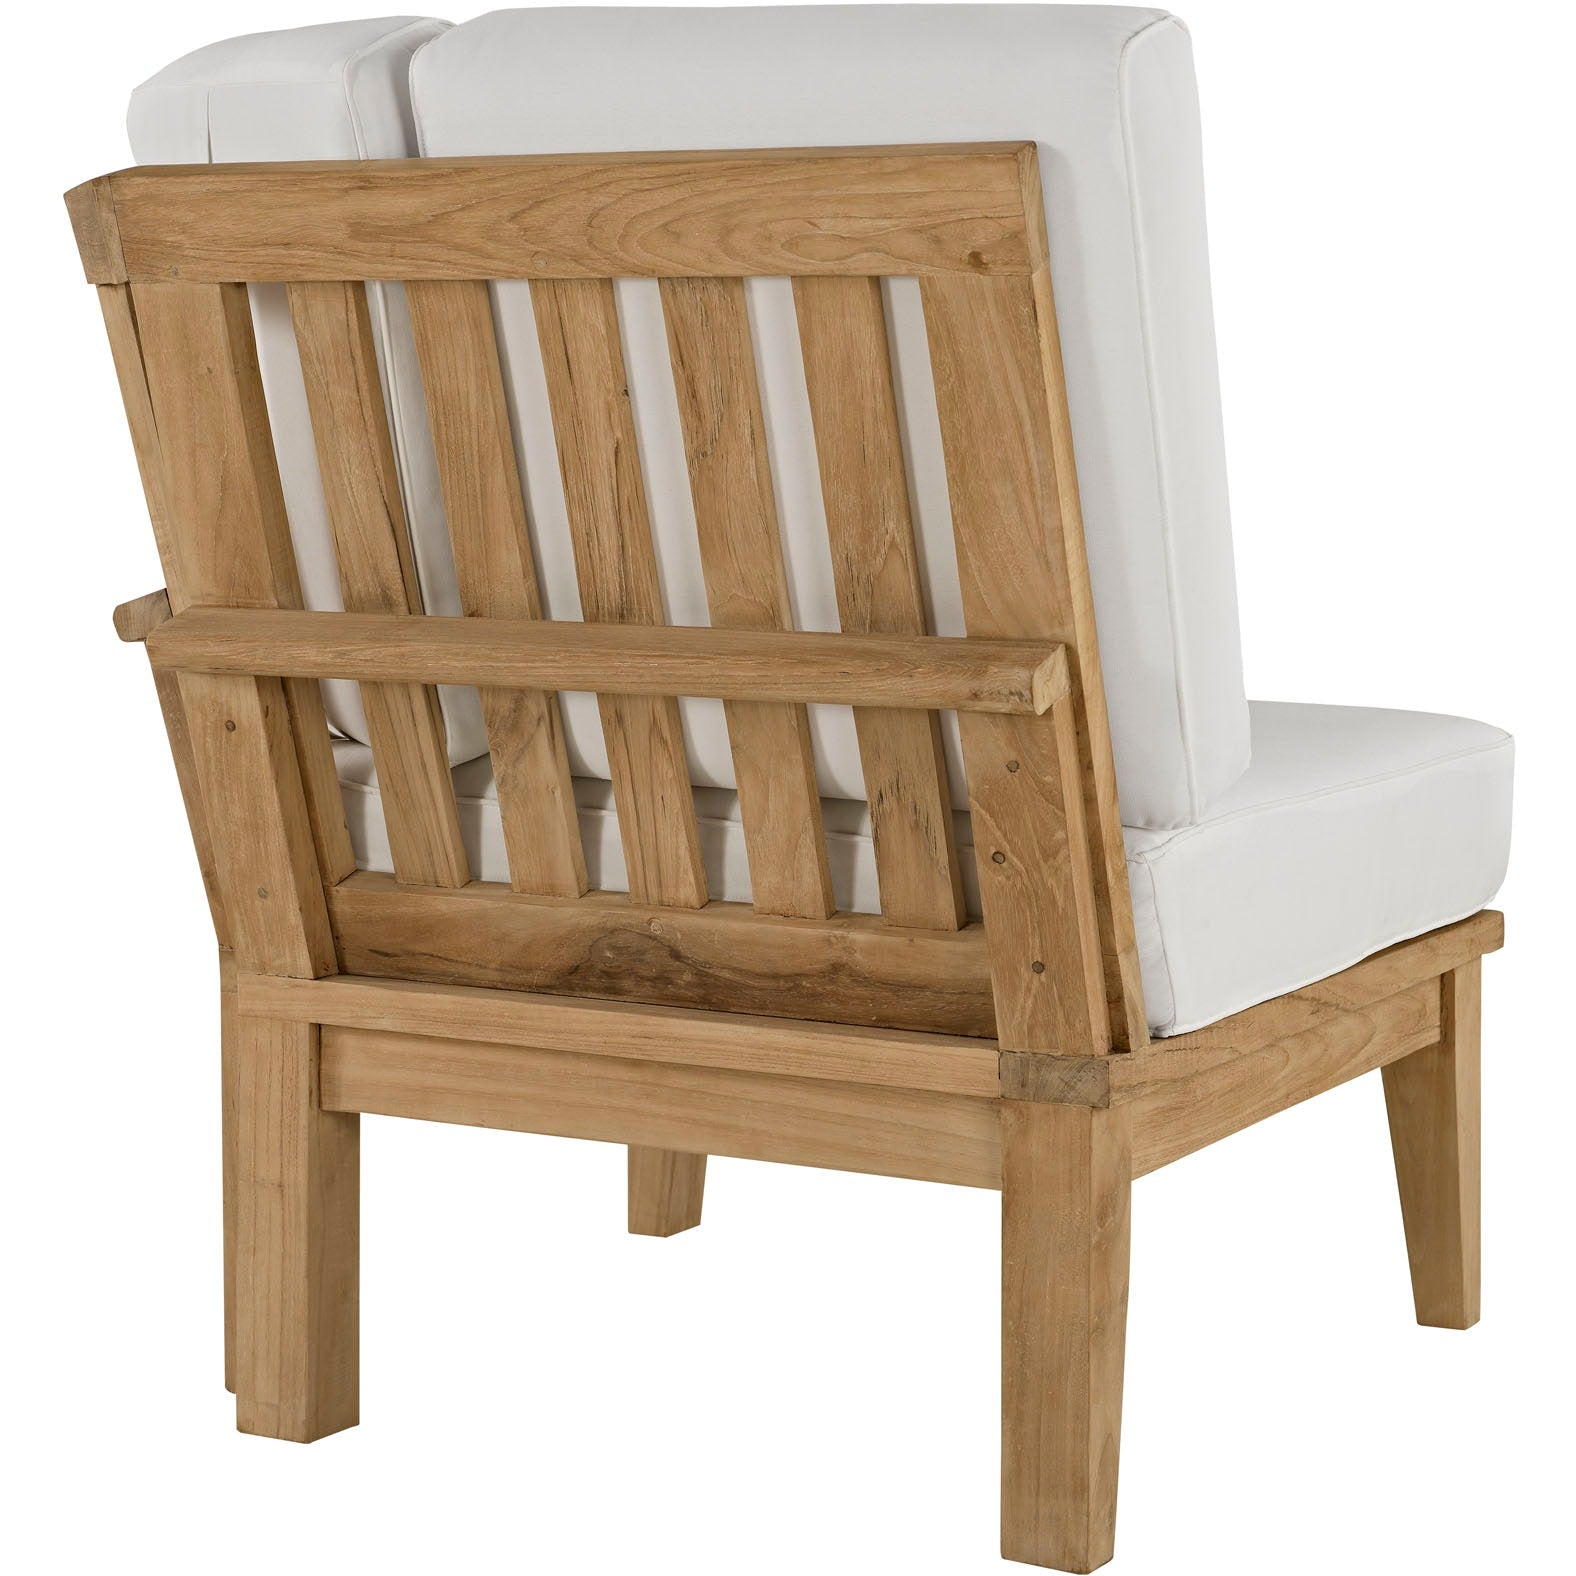 Marina 6 Piece Outdoor Patio Teak Set - Natural White